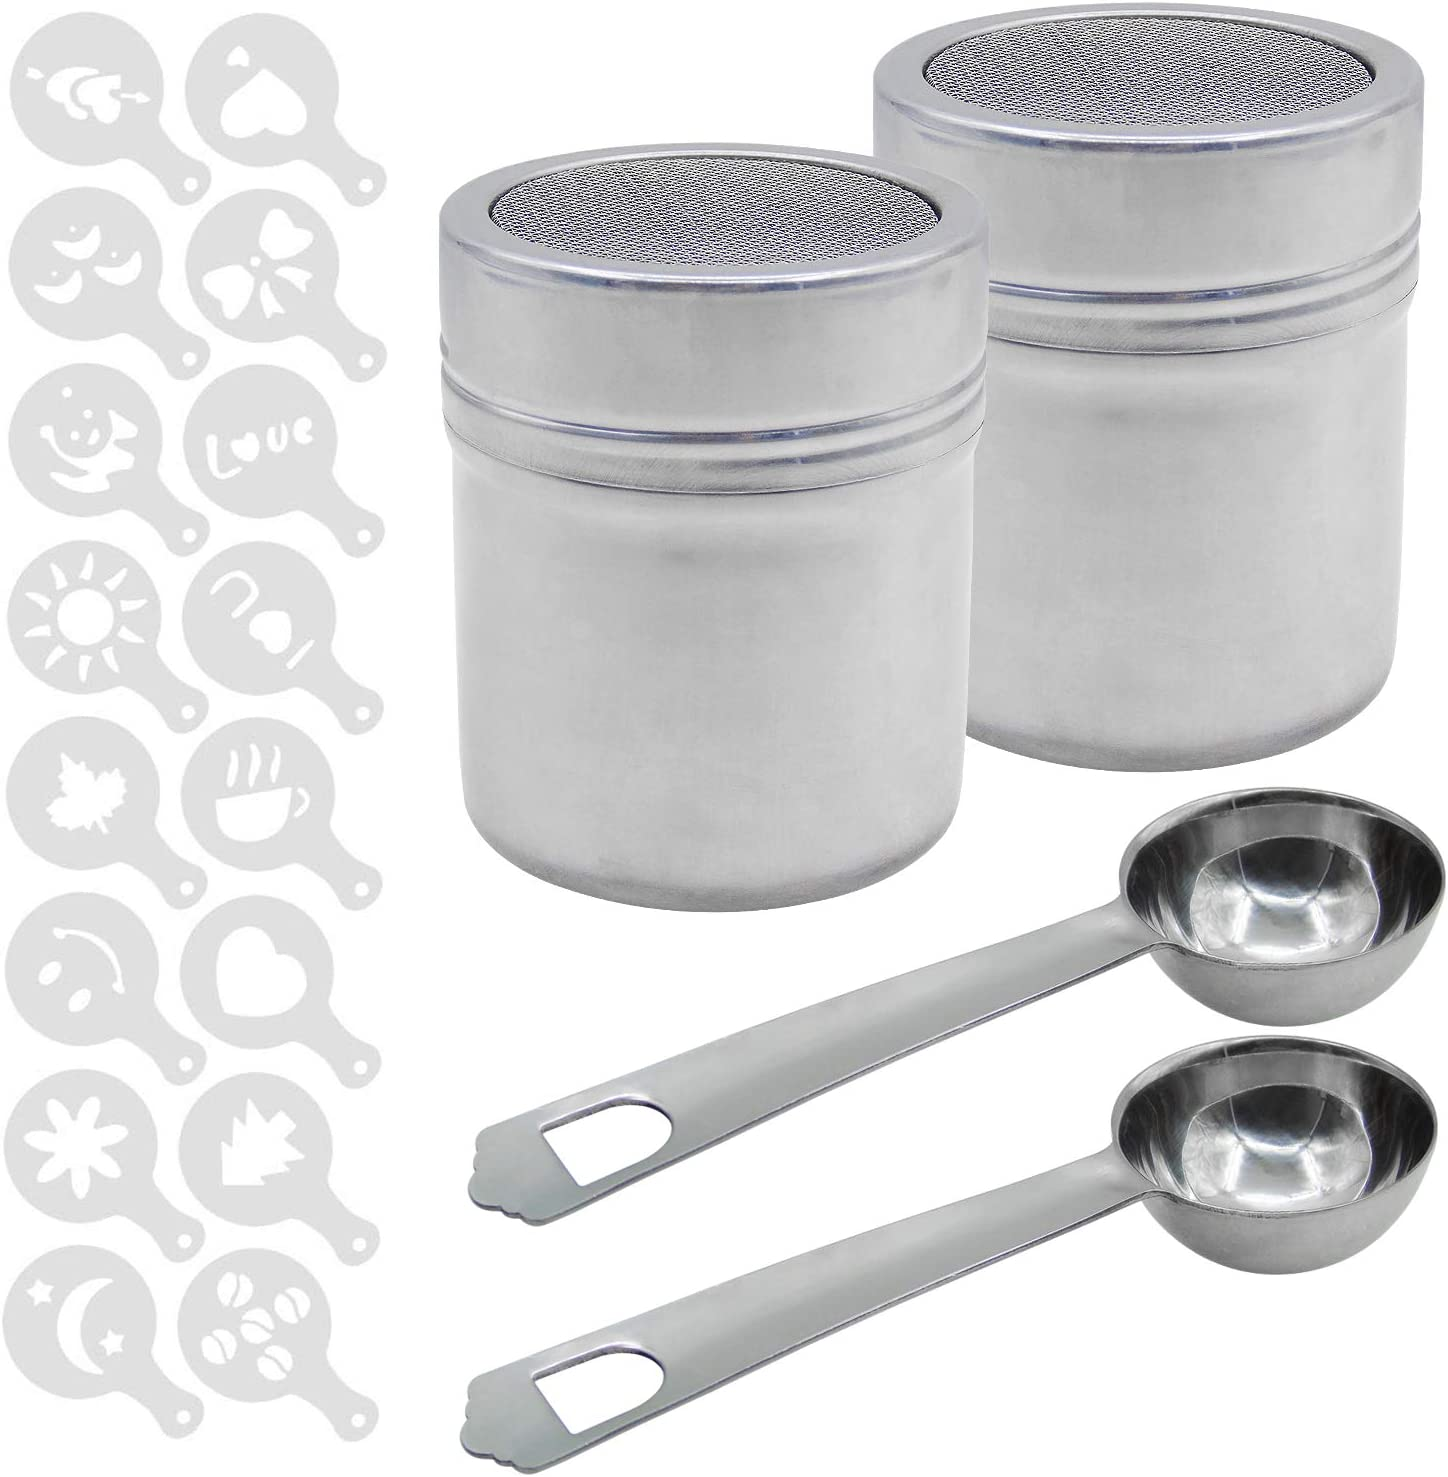 2 Packs Stainless Steel Powder Shakers Mesh Shaker Powder Cans with 2 Packs Coffee Measuring Spoons and 16 Pieces Printing Molds Stencils